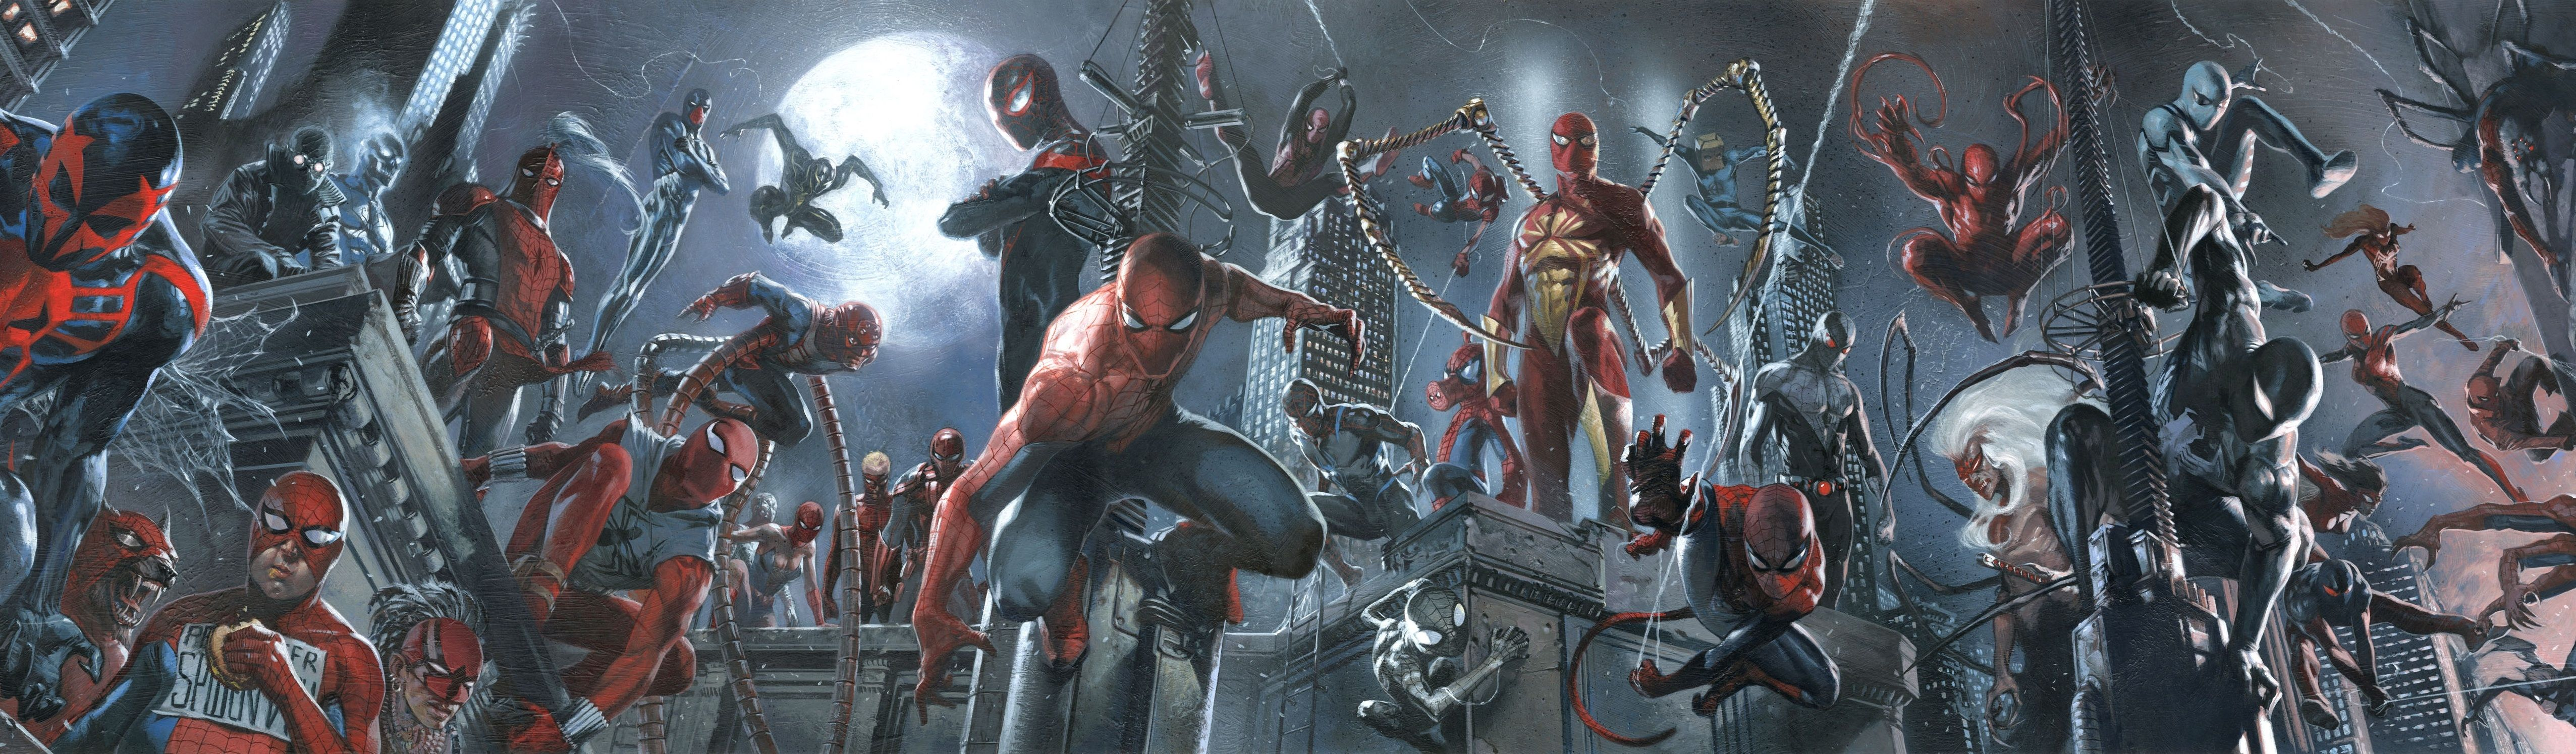 Spiderverse Universo Spiderman Poster